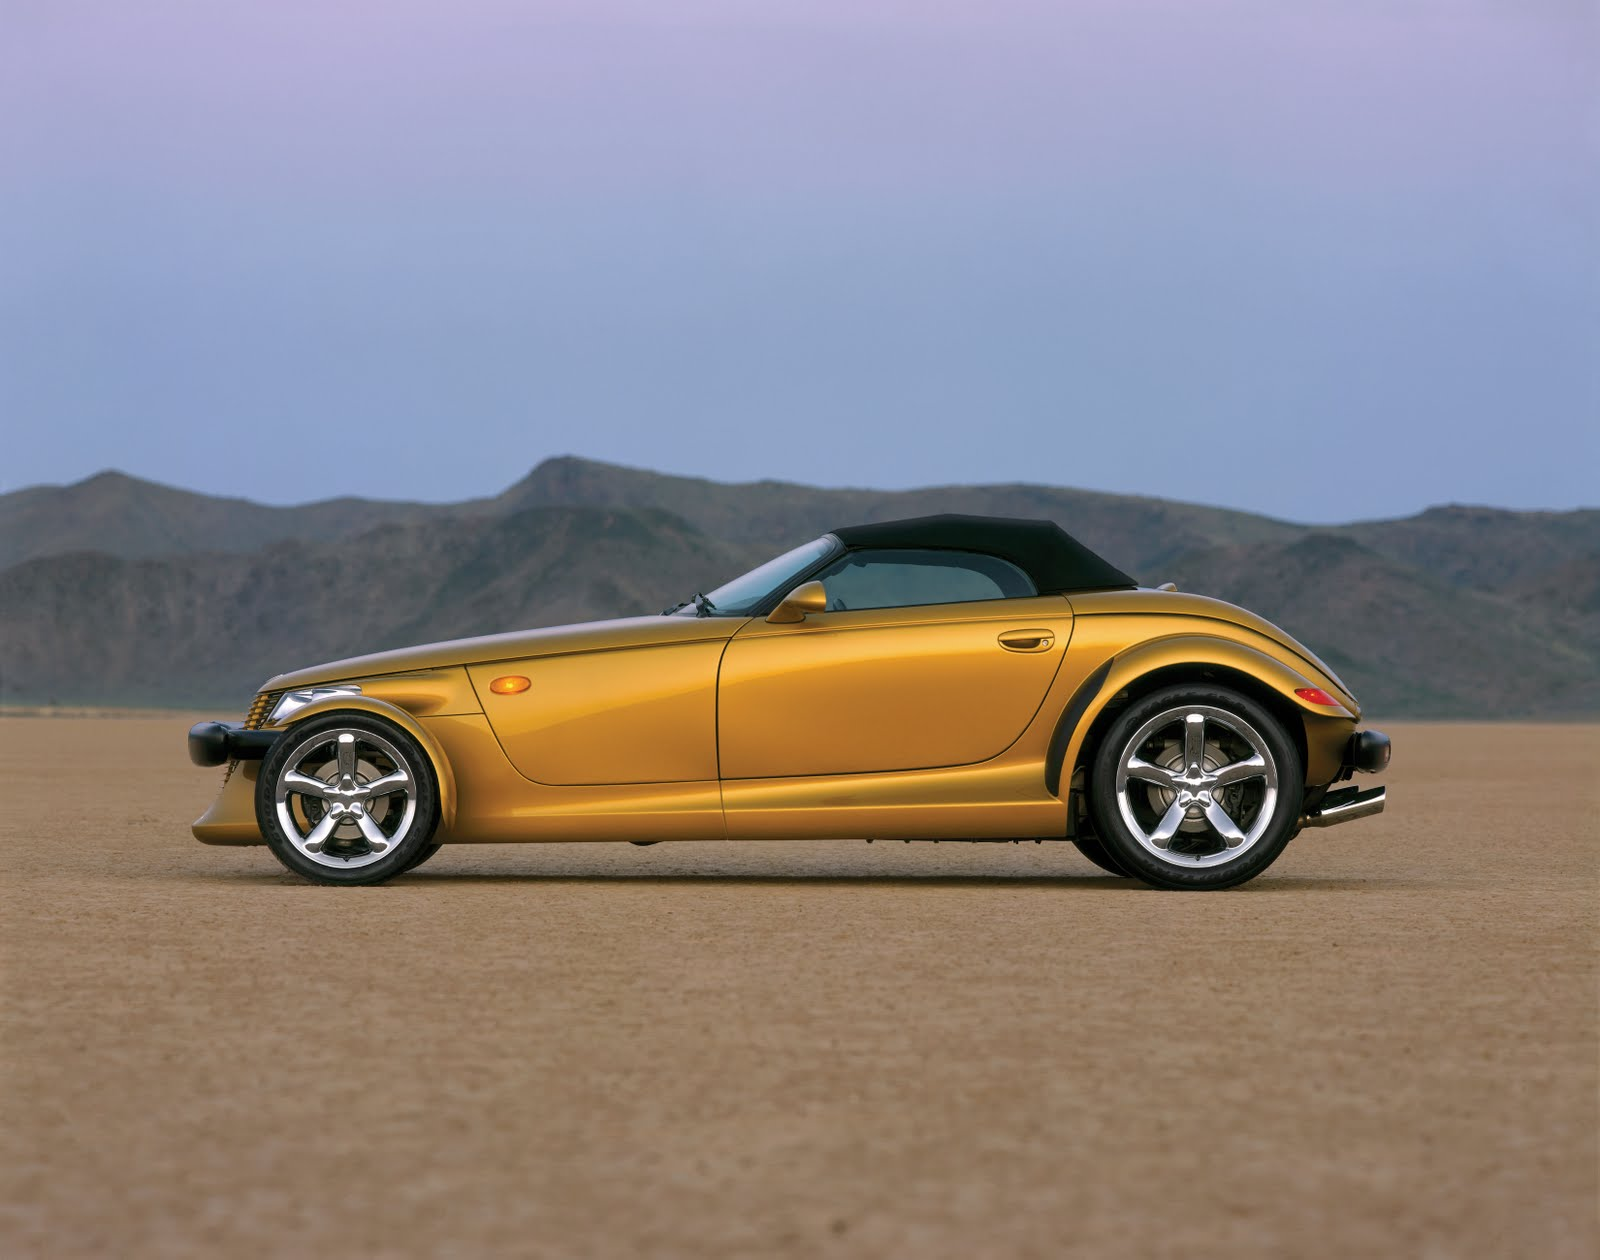 Kill It With Fire Plymouth Prowler Retrospective Could Have Used A V8